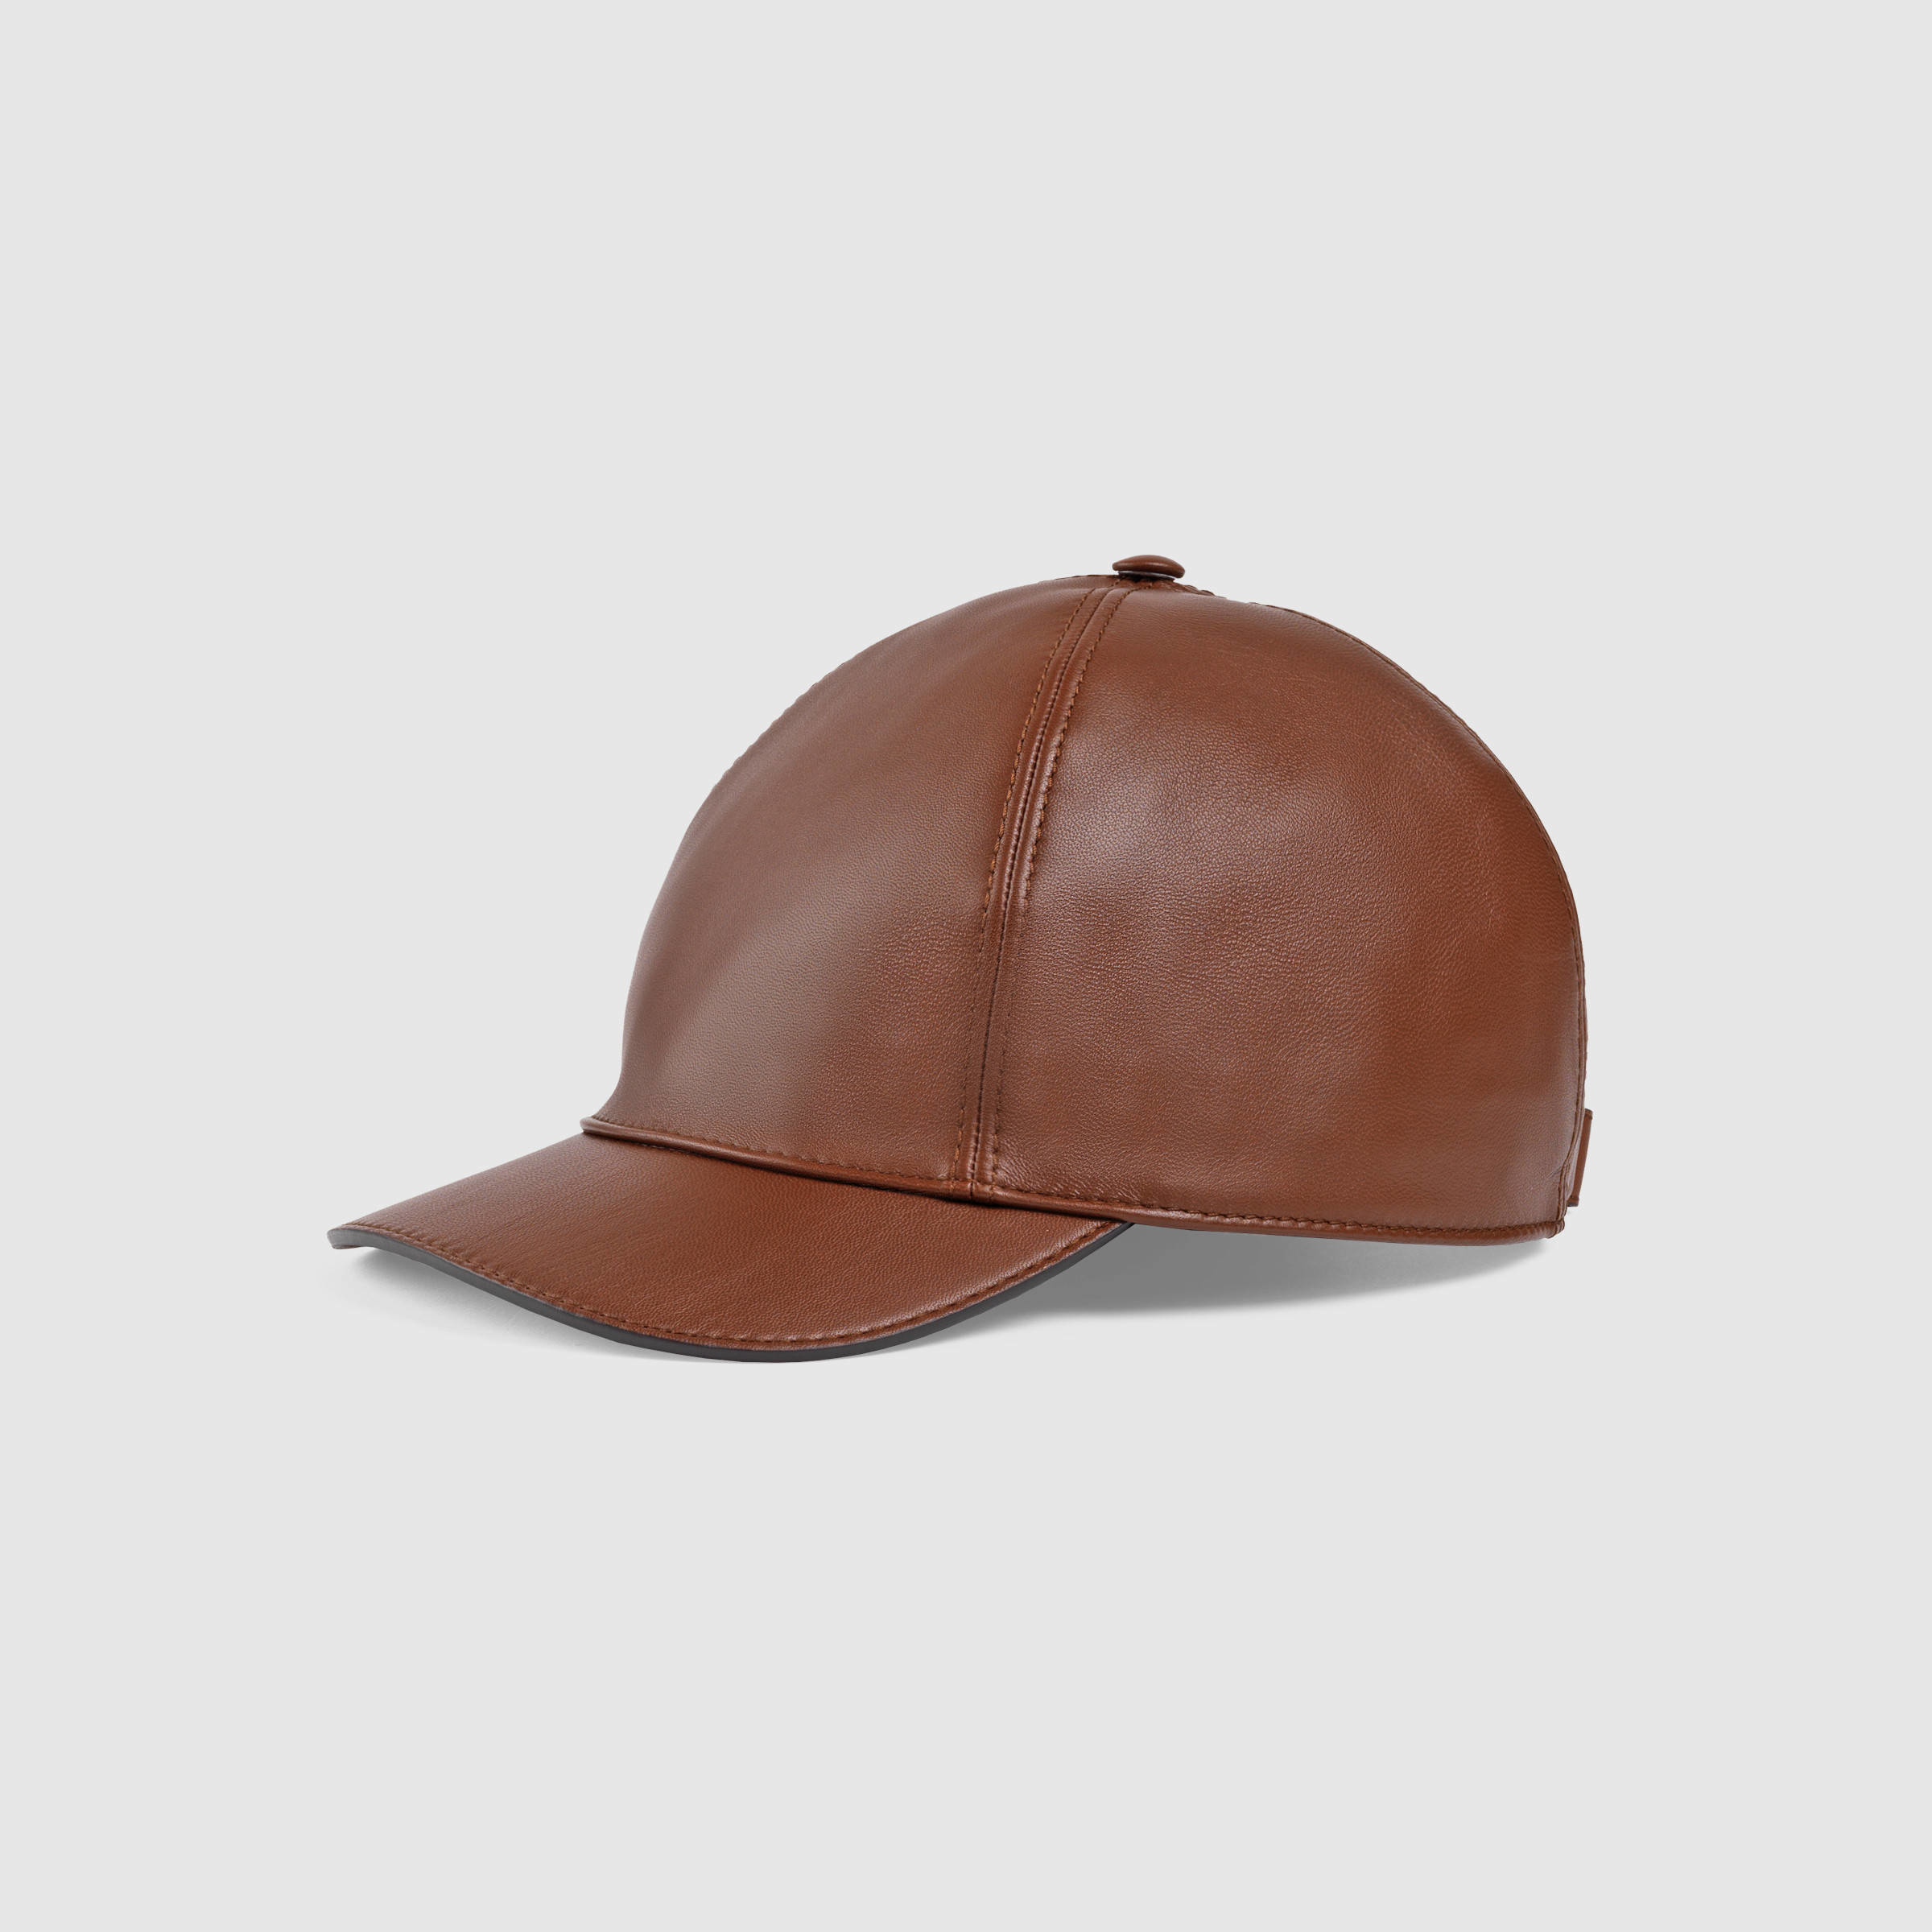 Lyst - Gucci Leather Baseball Hat in Brown for Men e291d5e7d39